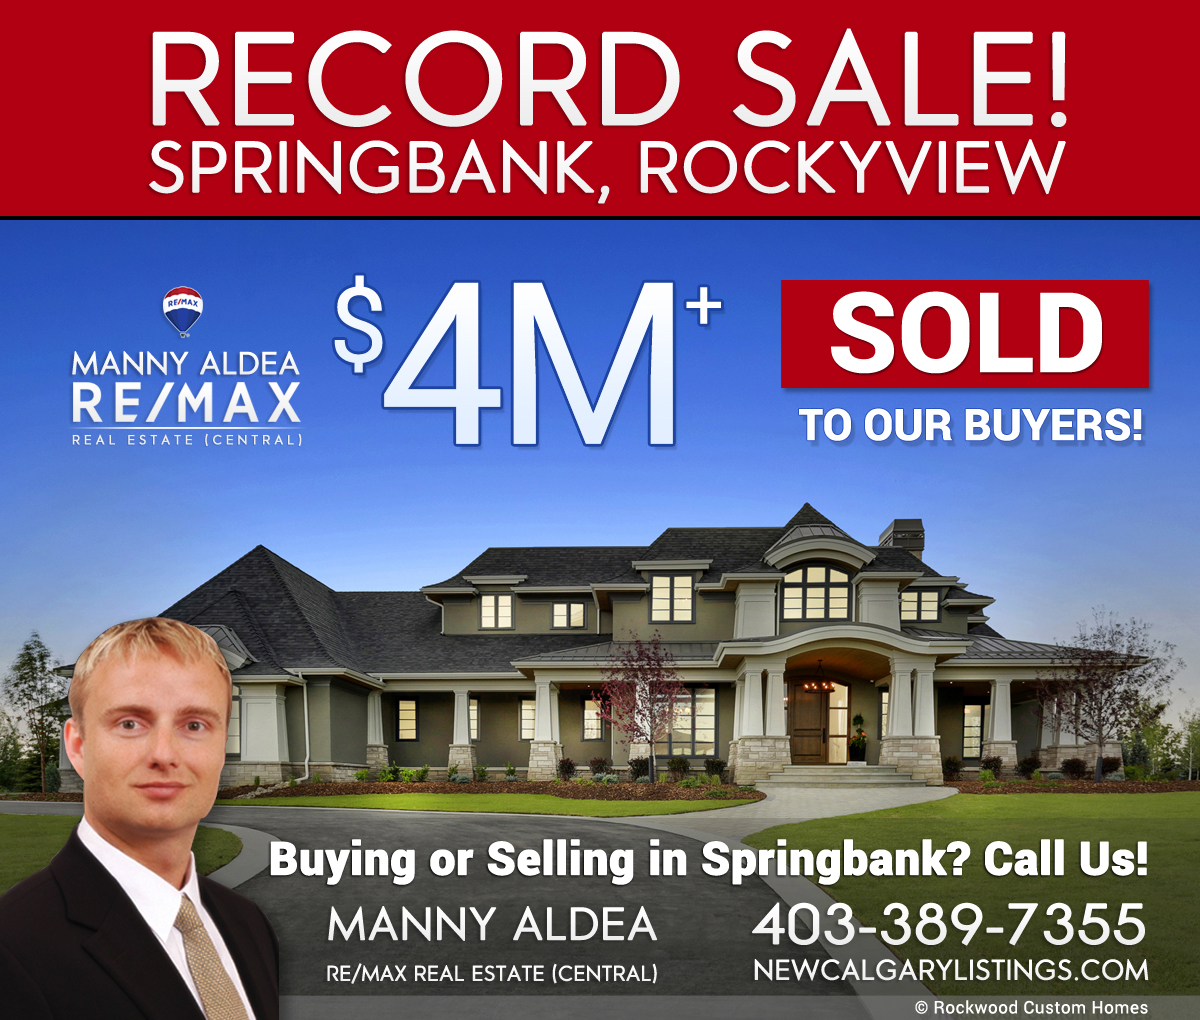 Springbank Acreage Sold - record price